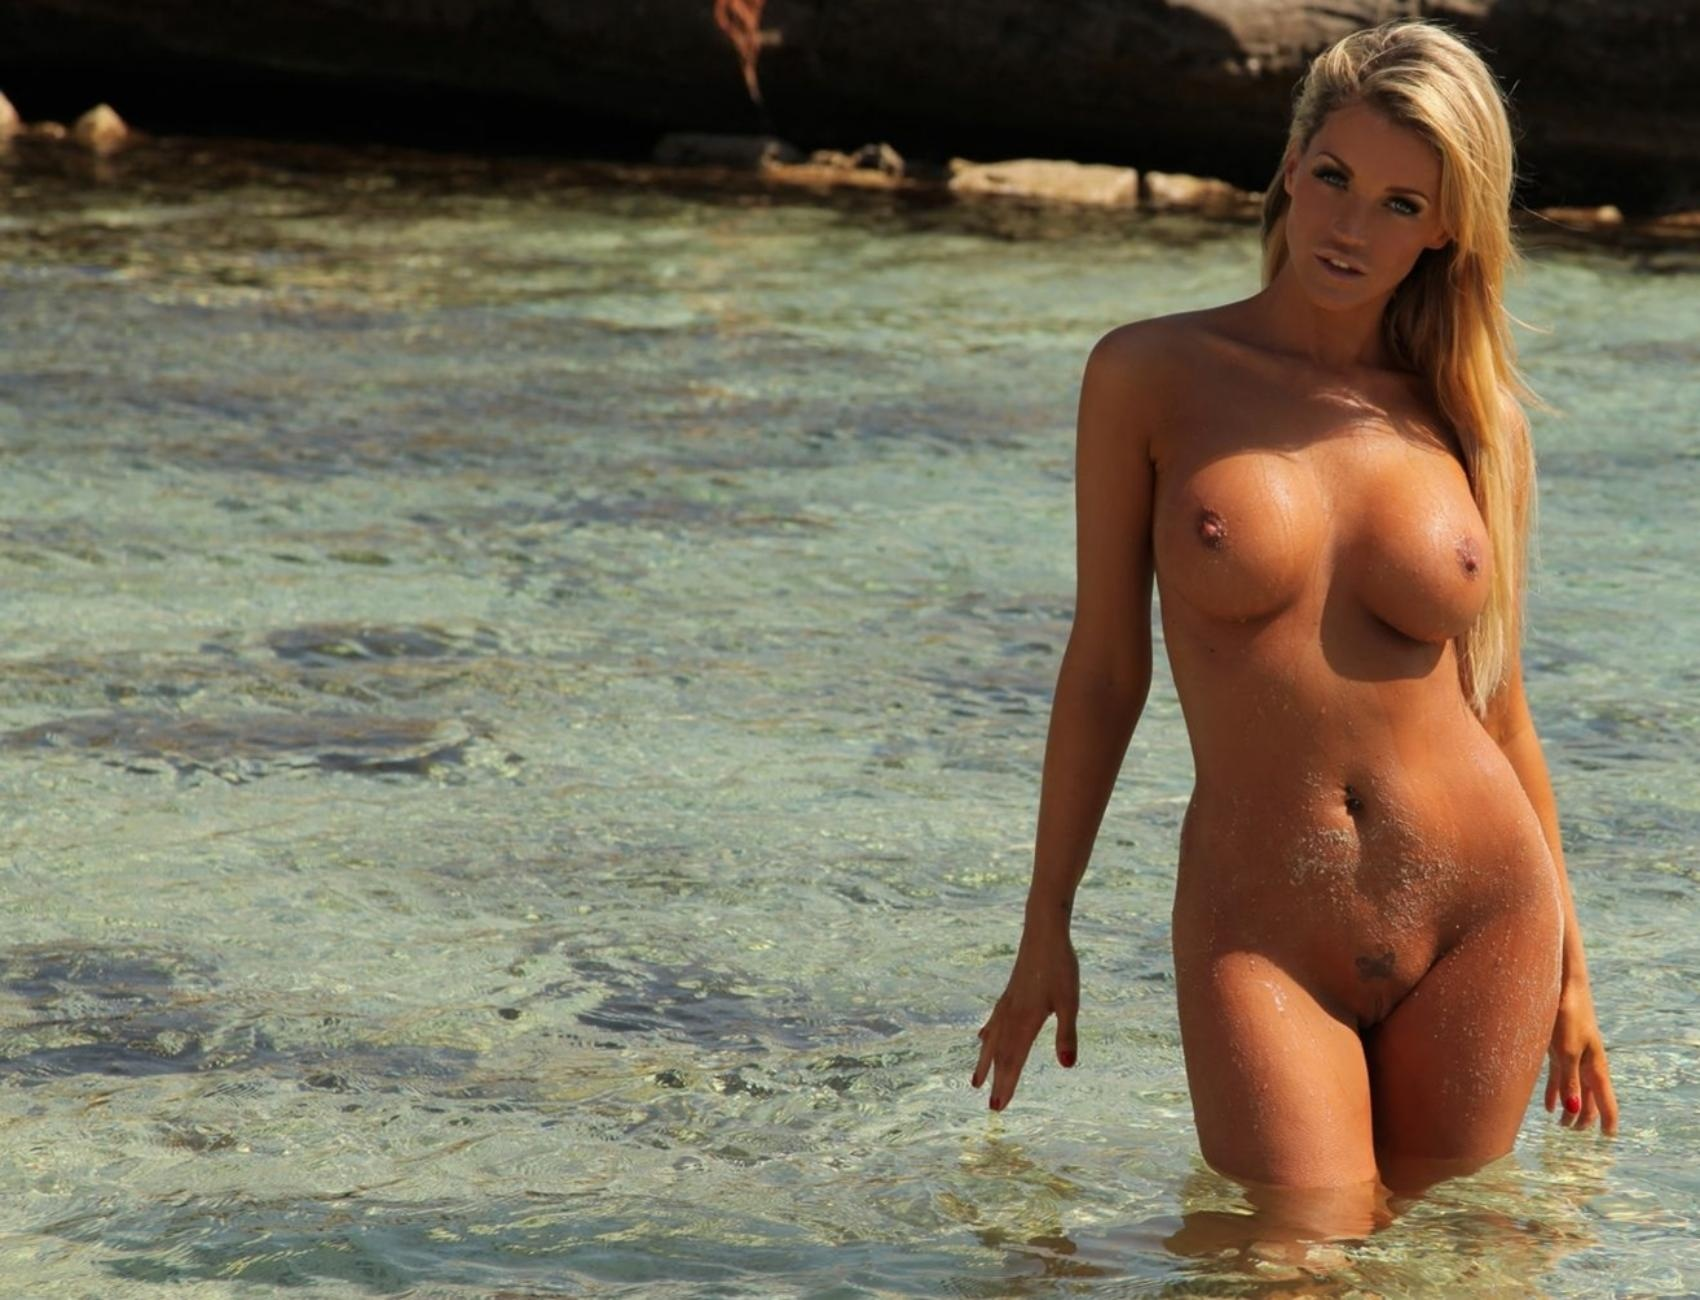 Wallpaper Holly Henderson, Nude, Naked, Beach, Big Tits -7139